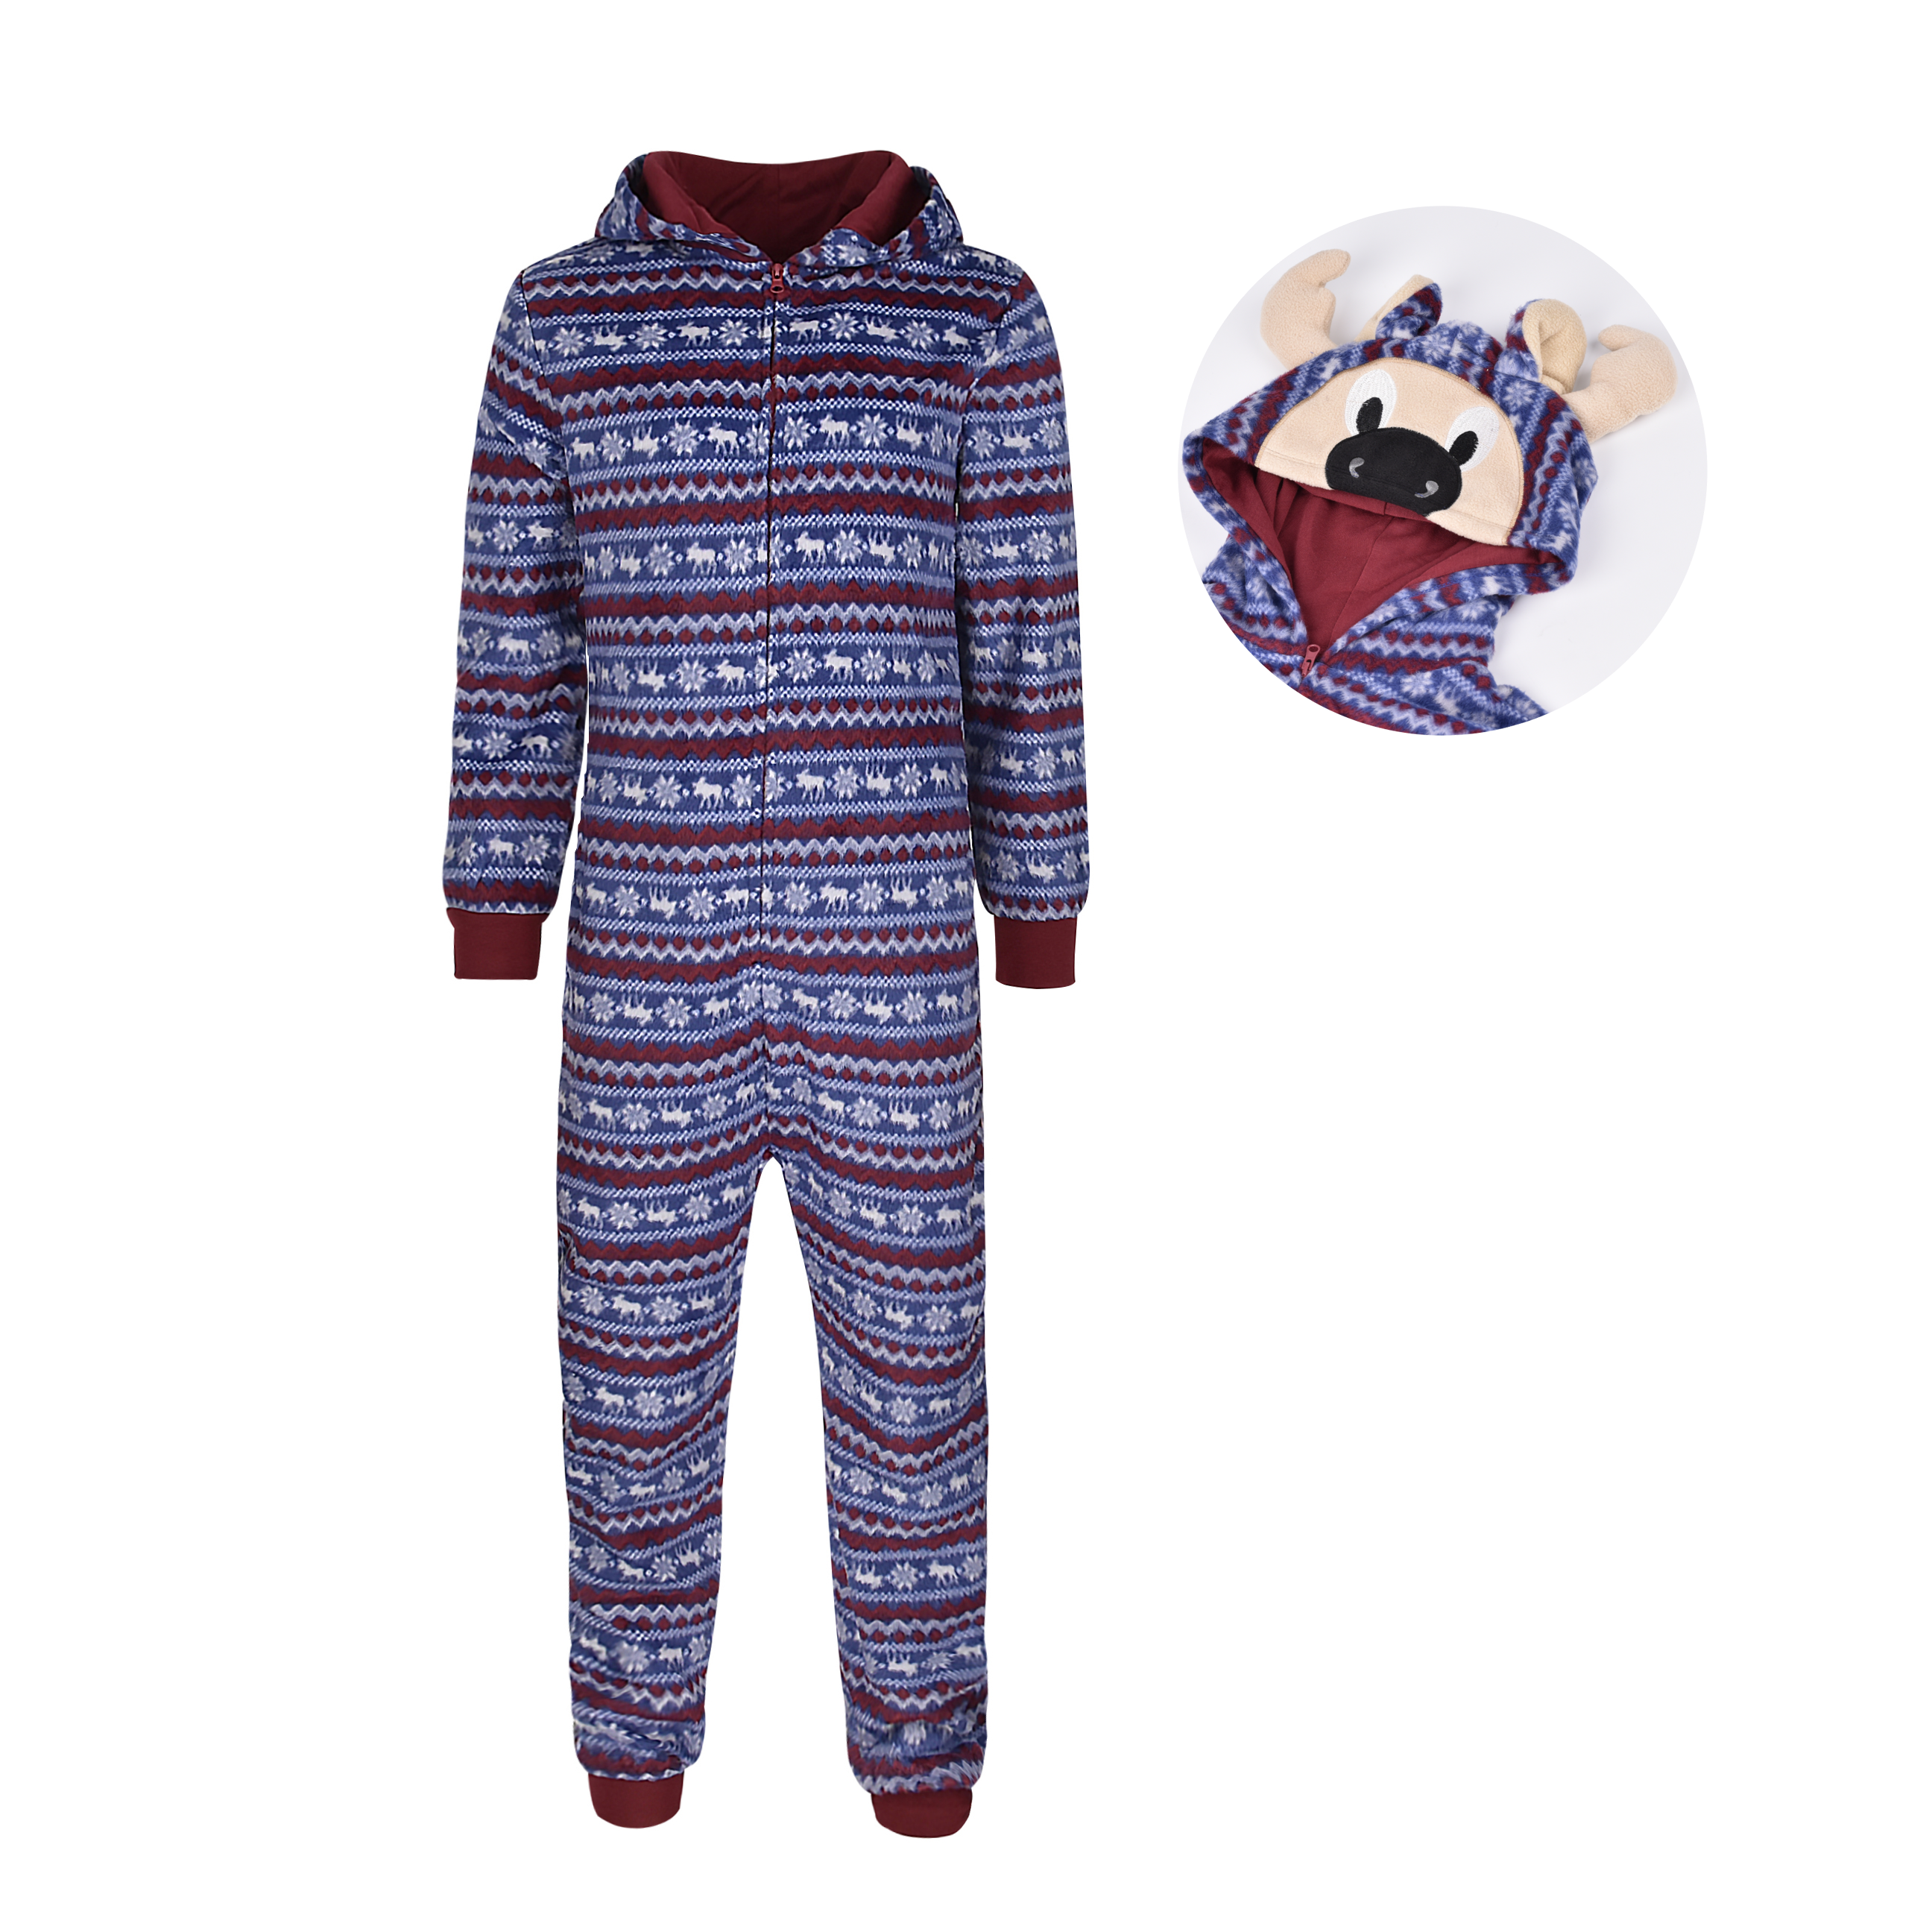 Jongens cartoon animal mascotte carnaval goedkope halloween cosplay onesie pyjama kostuum voor kids